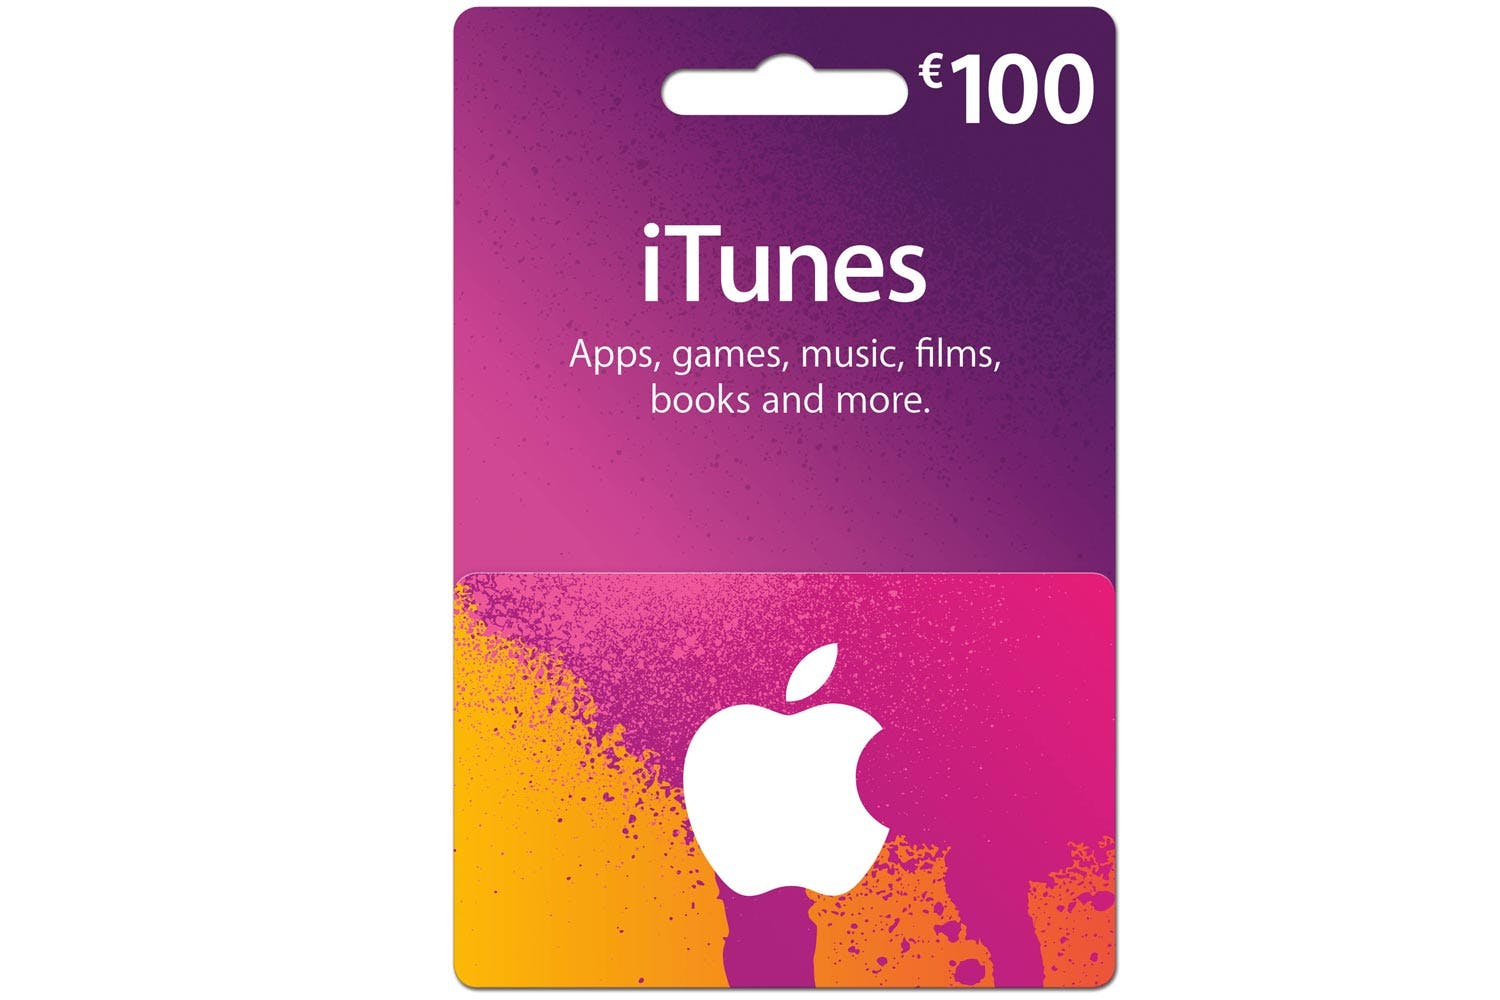 Itunes Gift Cards Ireland